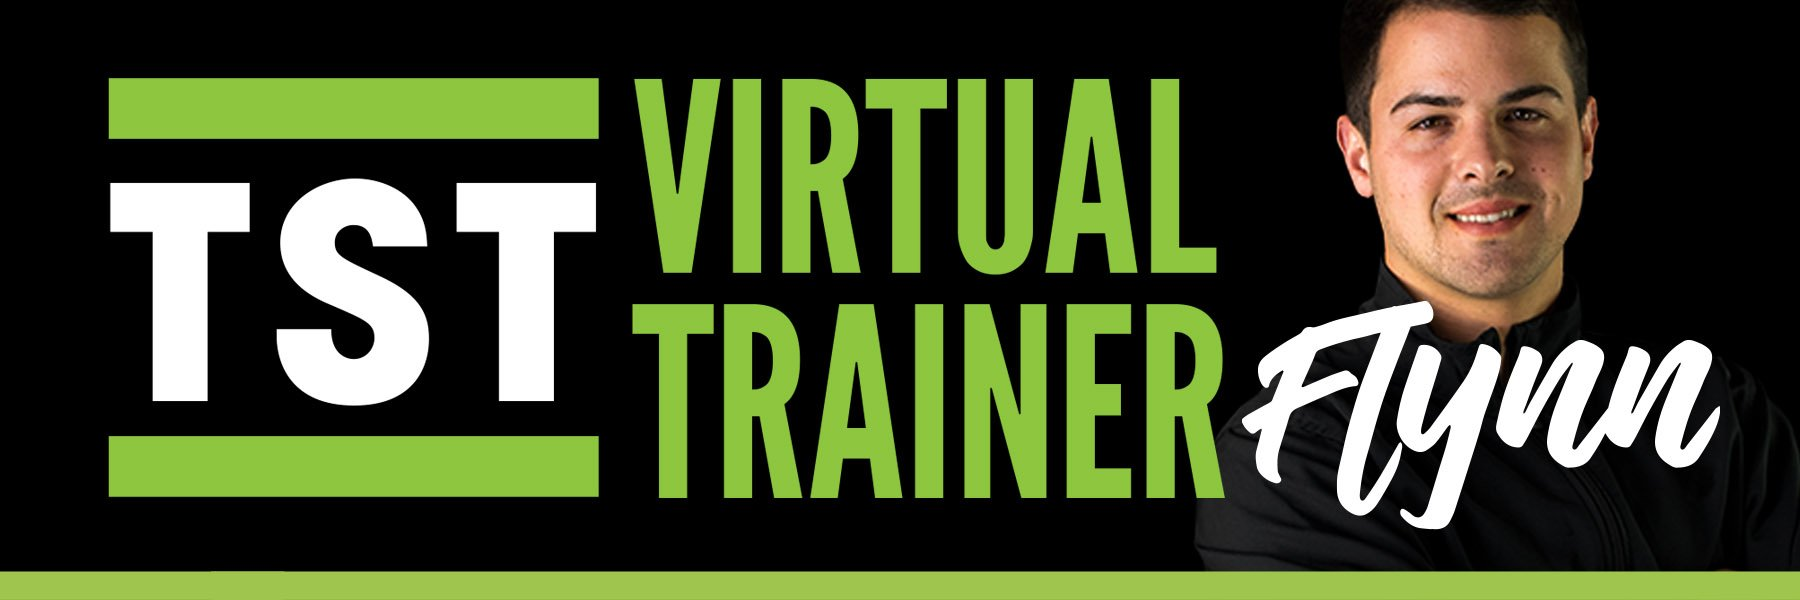 TST20 Virtual Trainer with Guest Trainer Flynn